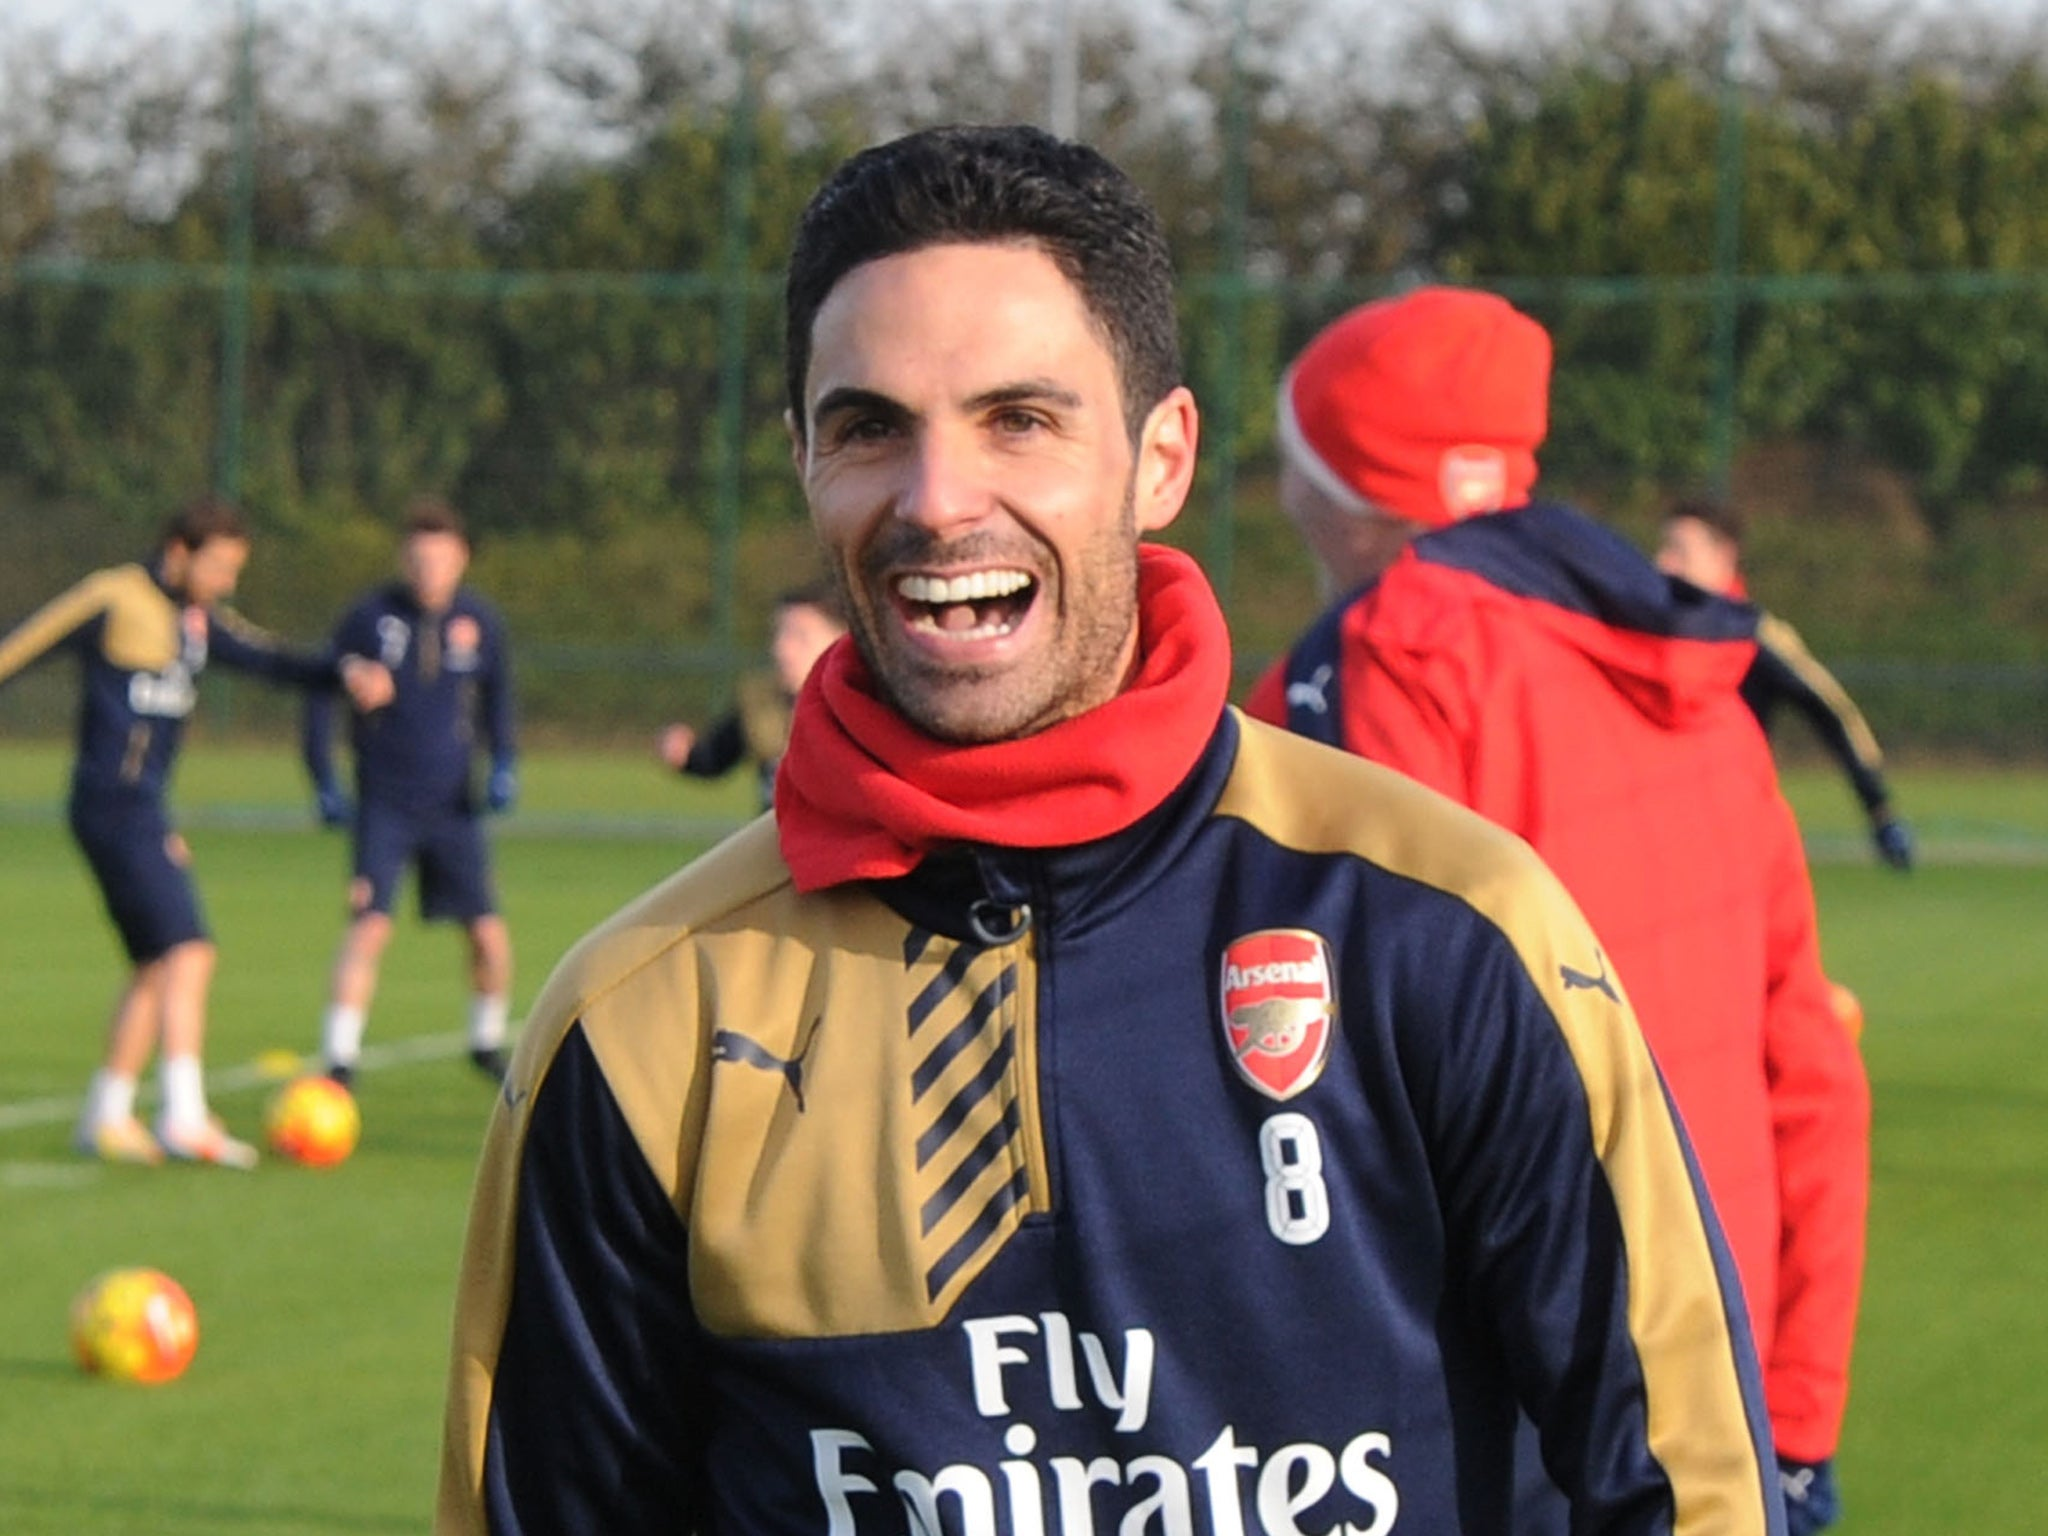 Mikel Arteta Arsenal Midfielder Lined Up For Coaching Role At Pep Guardiola S Manchester City The Independent The Independent